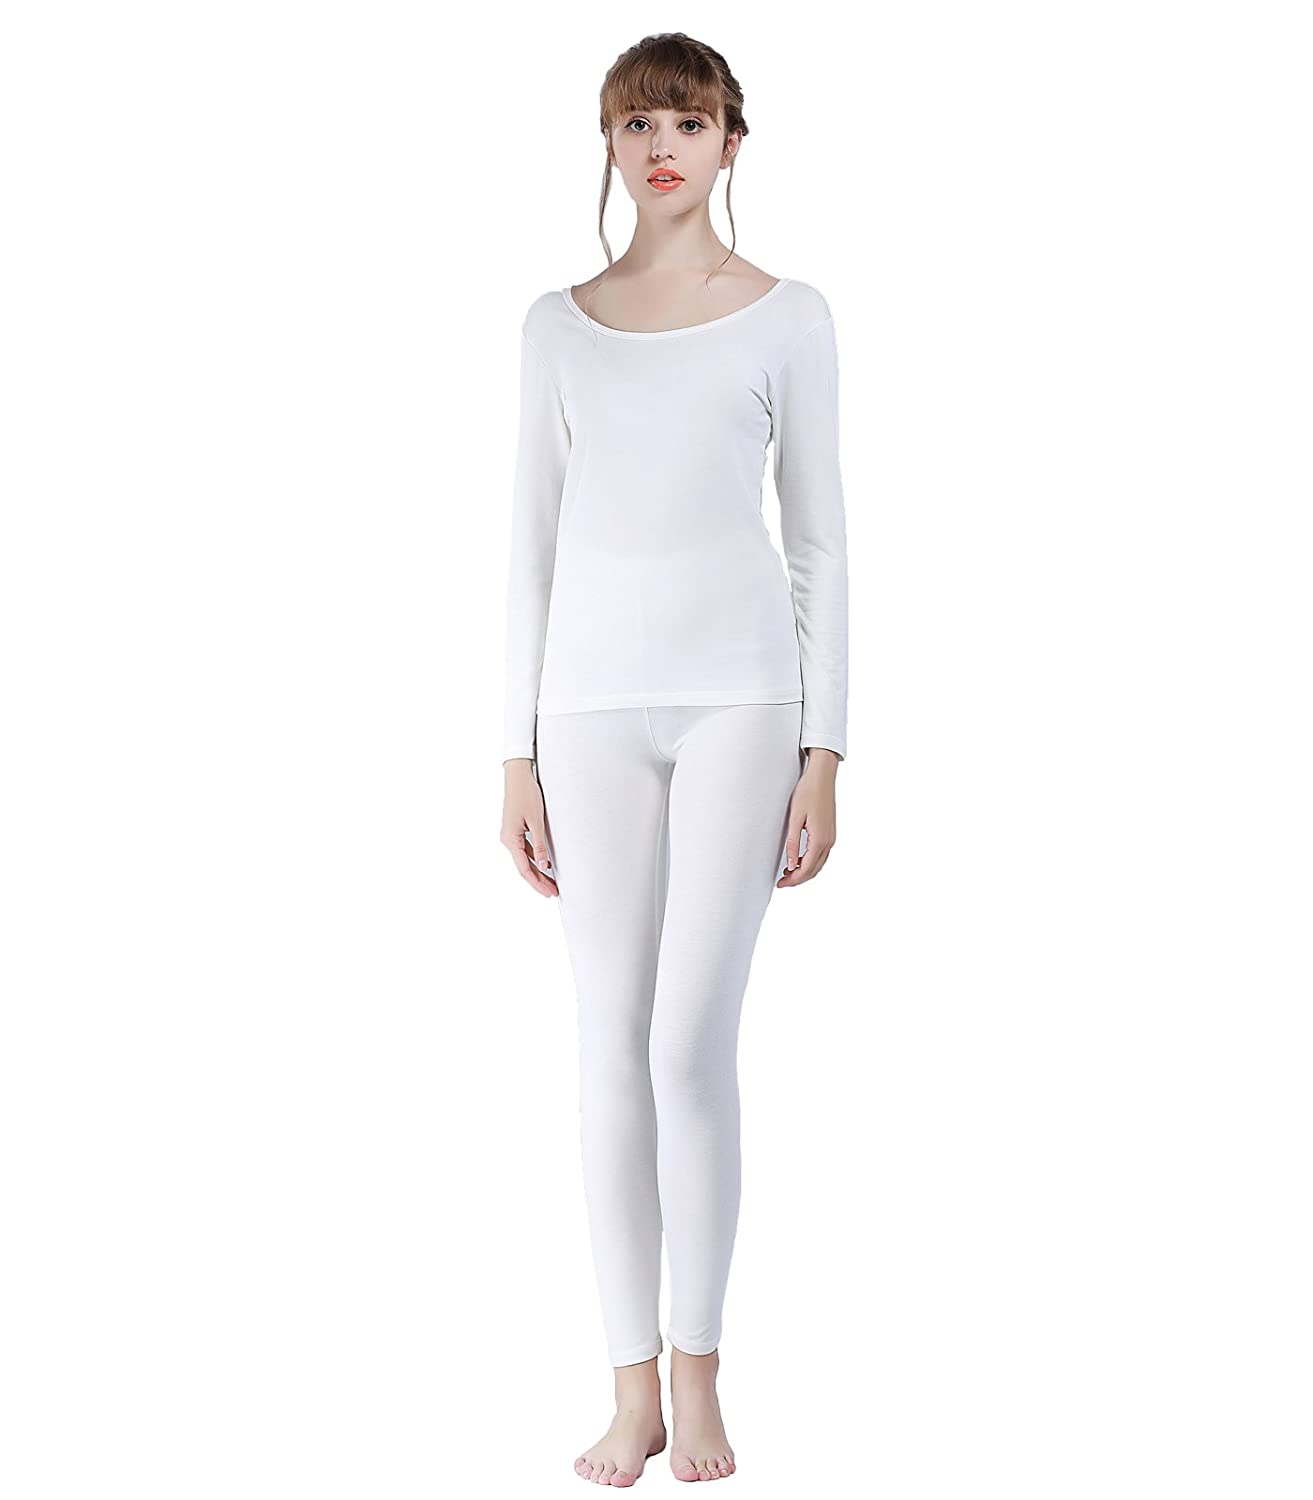 Liang Rou Women's Scoop Neck Thin Thermal Underwear Long Johns Set MS560-P